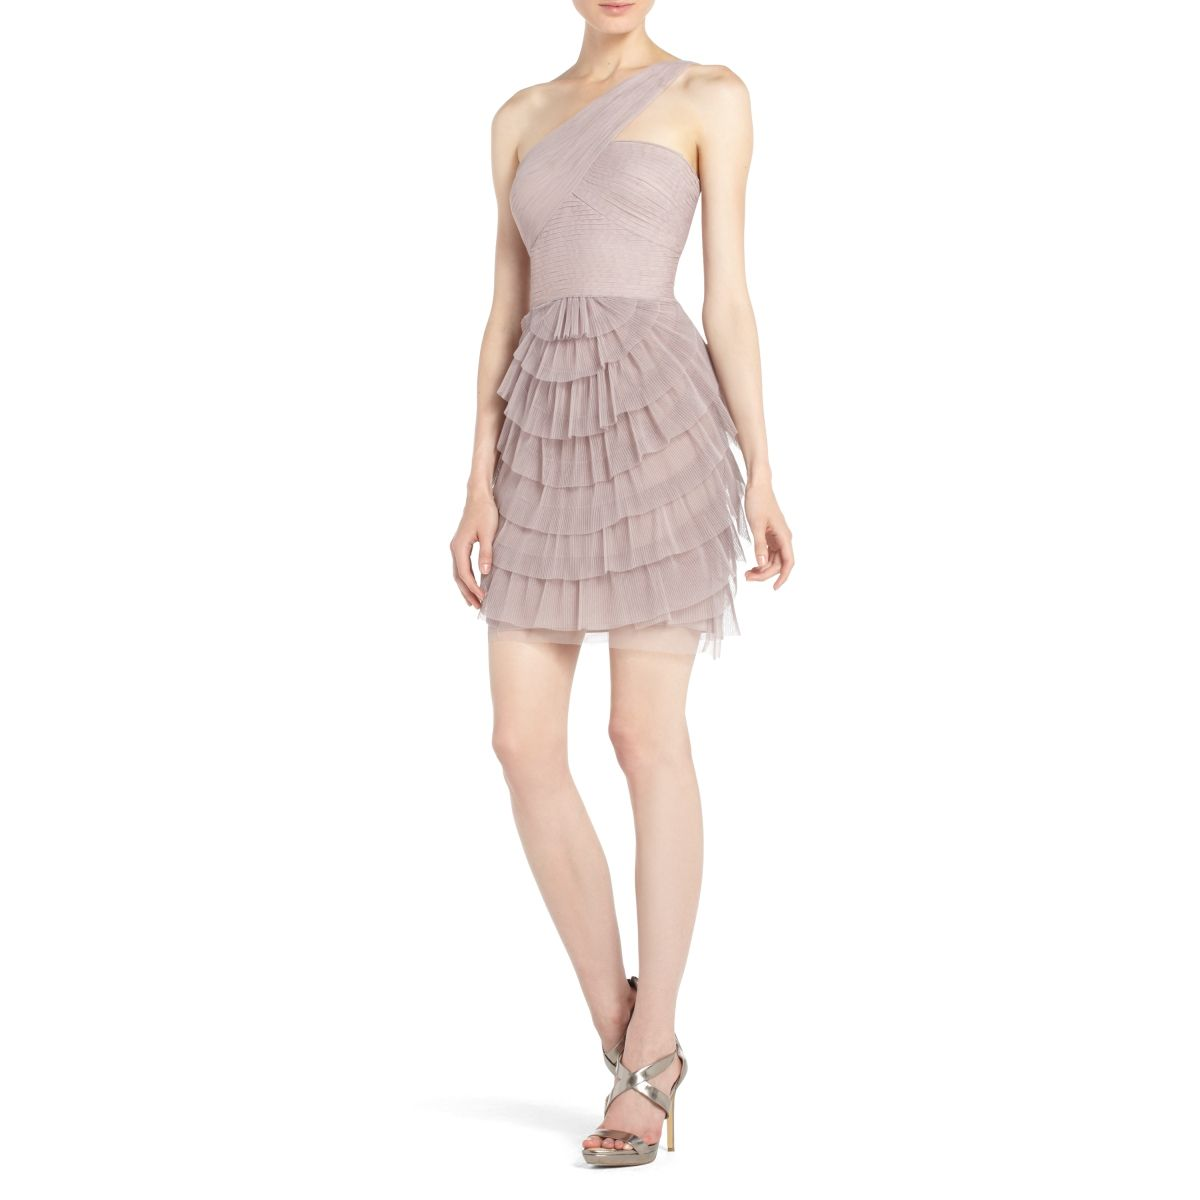 BCBGMAXAZRIA - SHOP BY CATEGORY: DRESSES: VIEW ALL: ELLA ONE ...